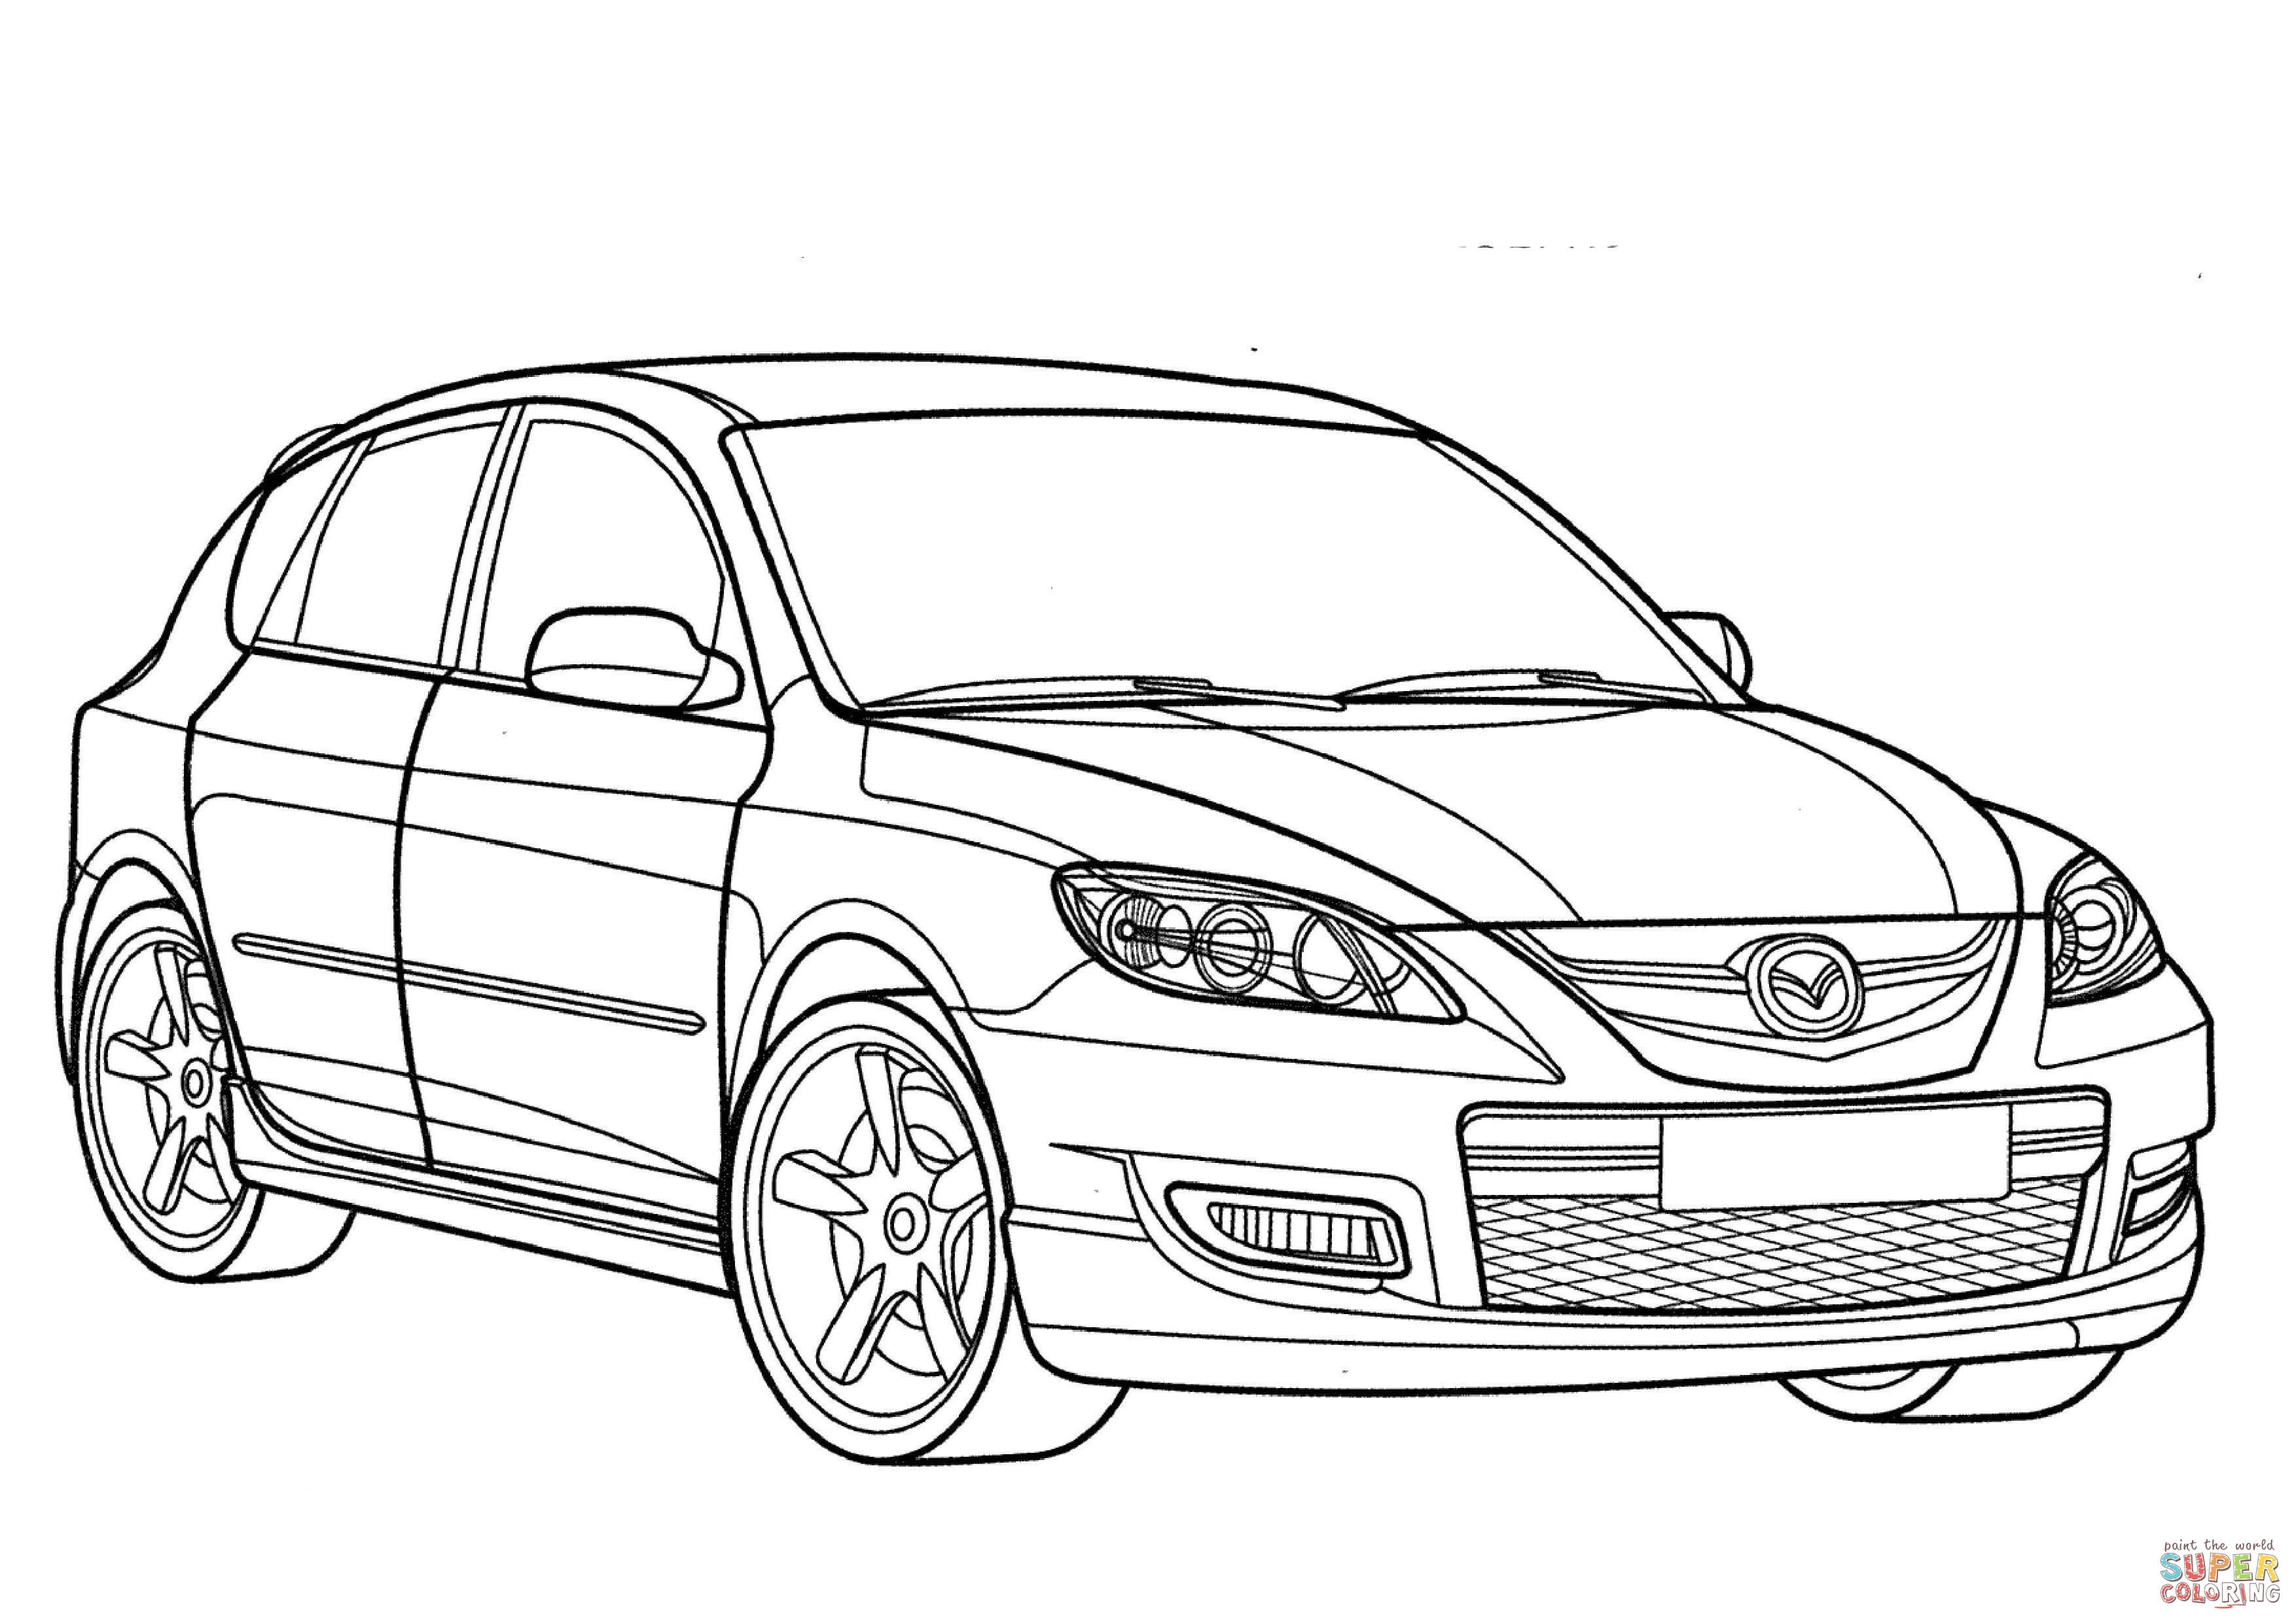 Mazda 3 clipart png black and white stock Mazda 3 MPS coloring page | Free Printable Coloring Pages png black and white stock